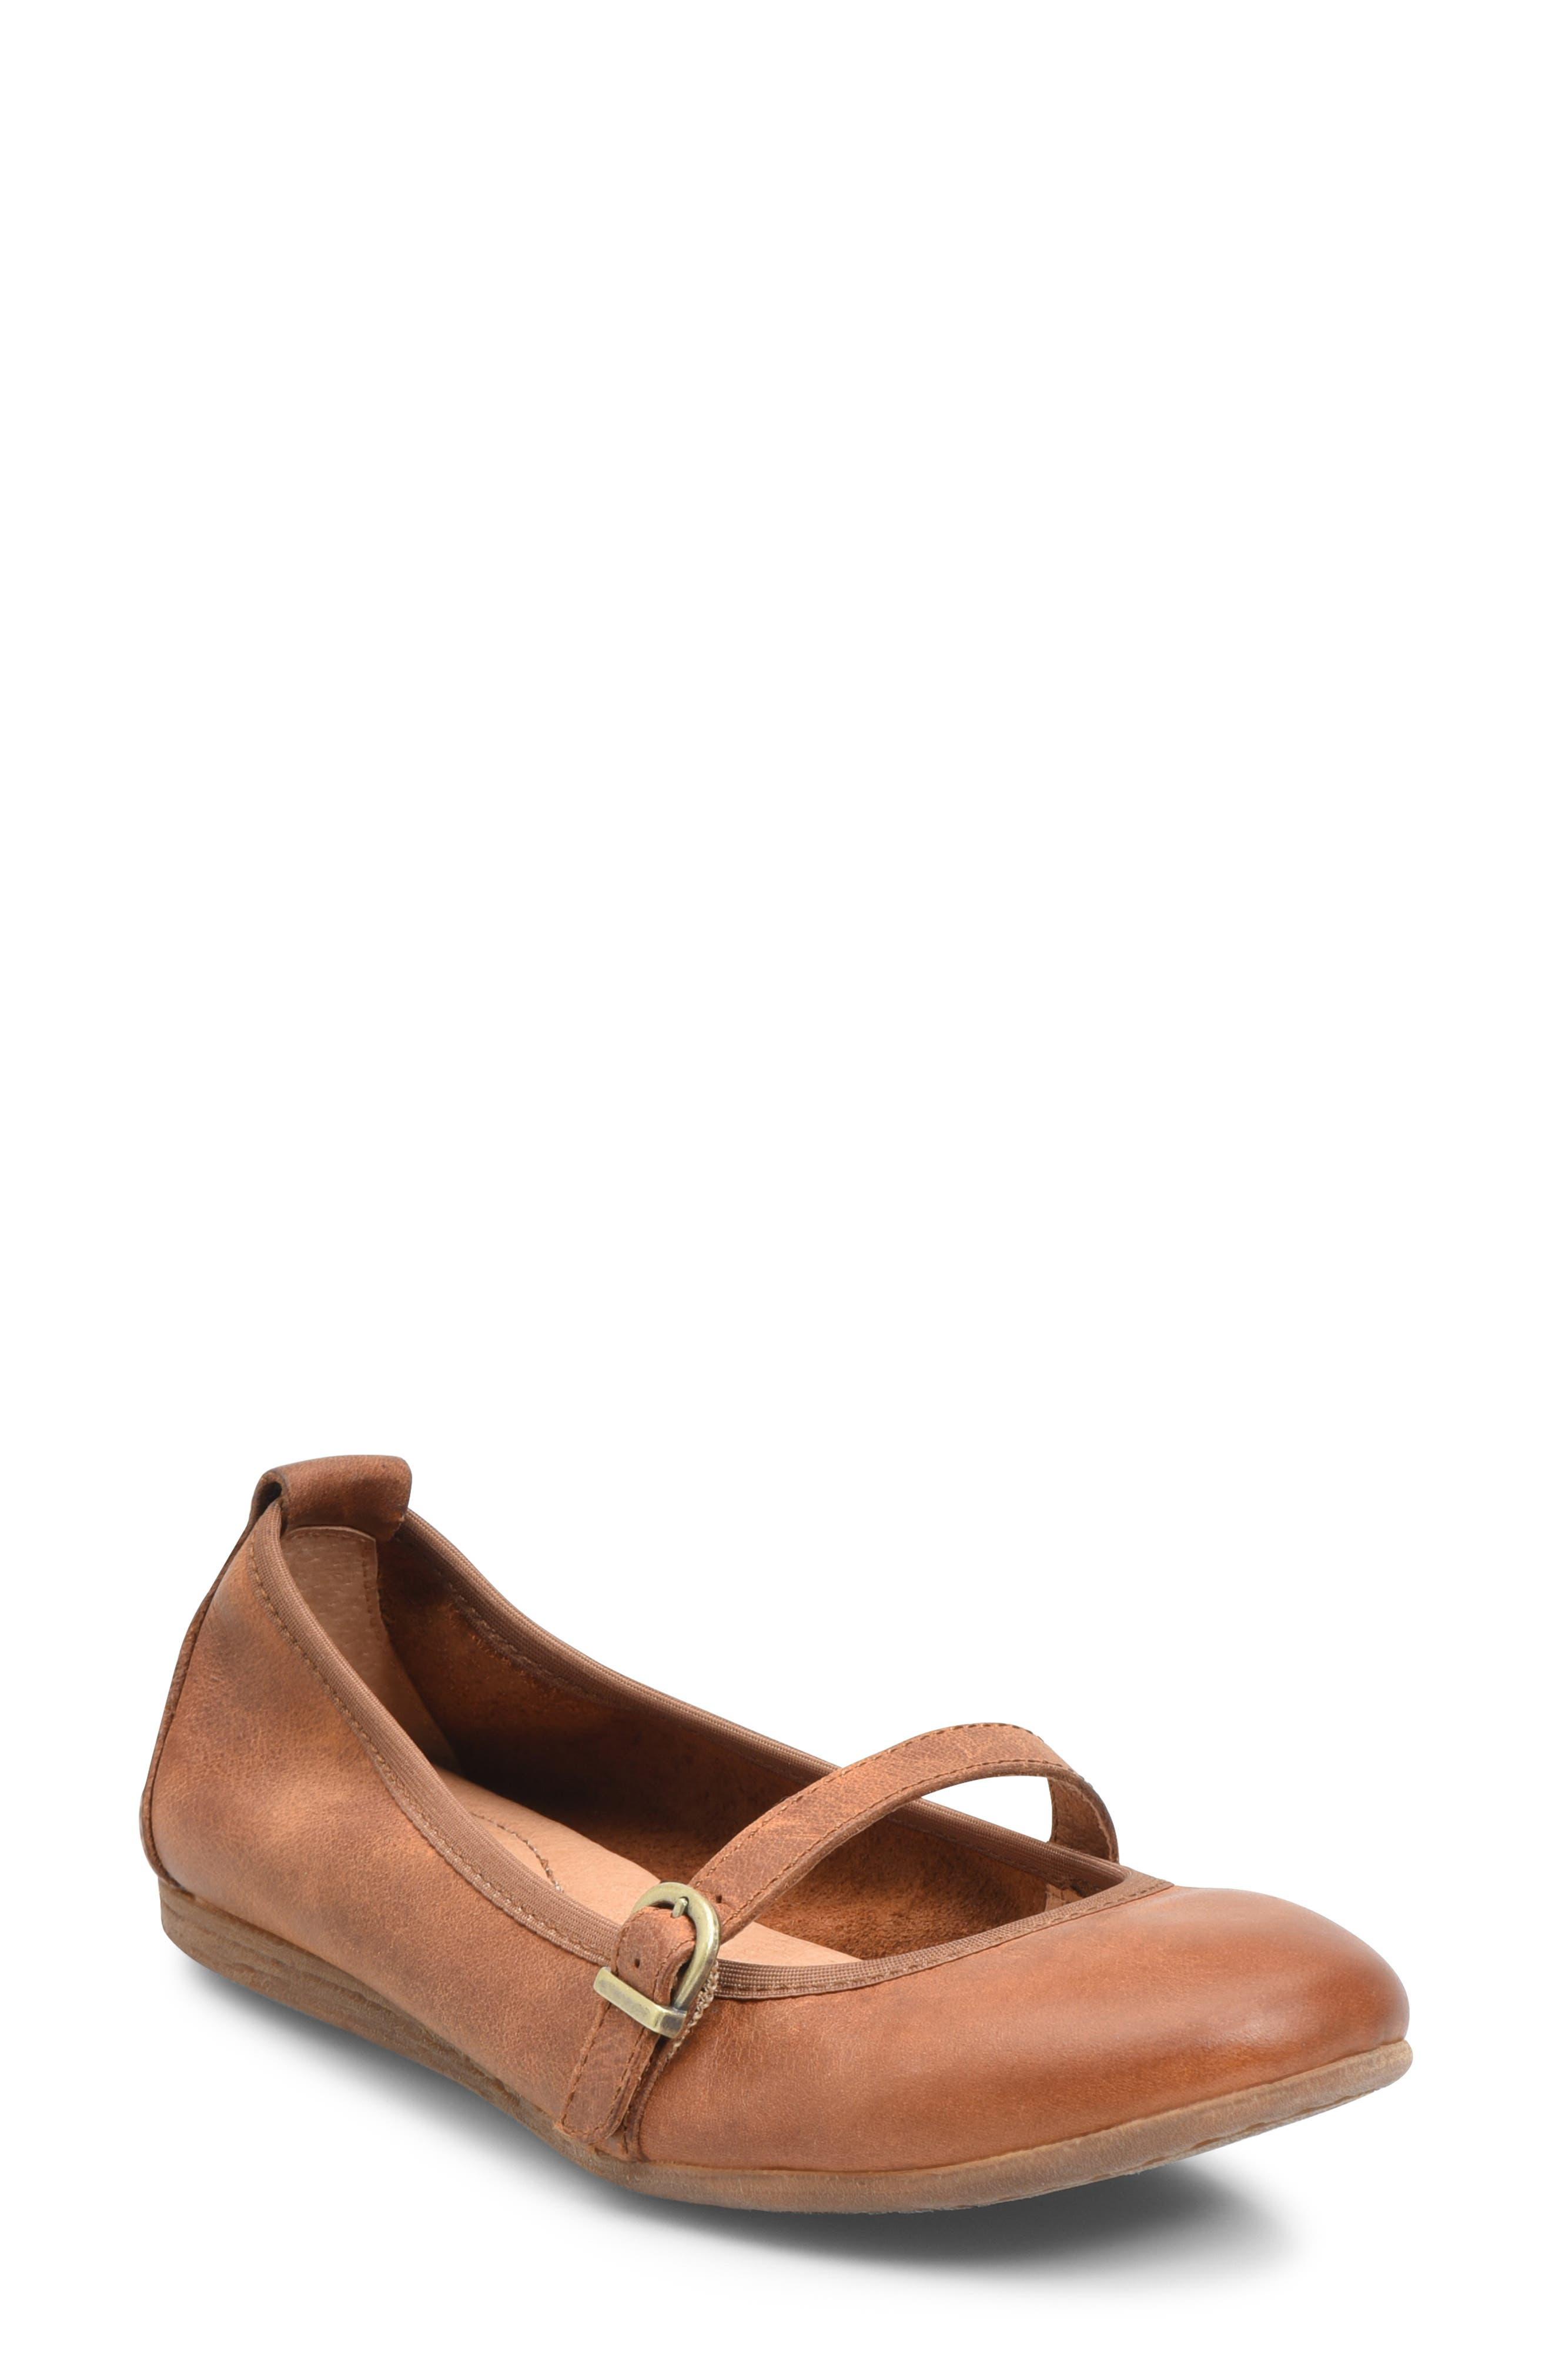 B?rn Curlew Mary Jane Ballet Flat, Brown